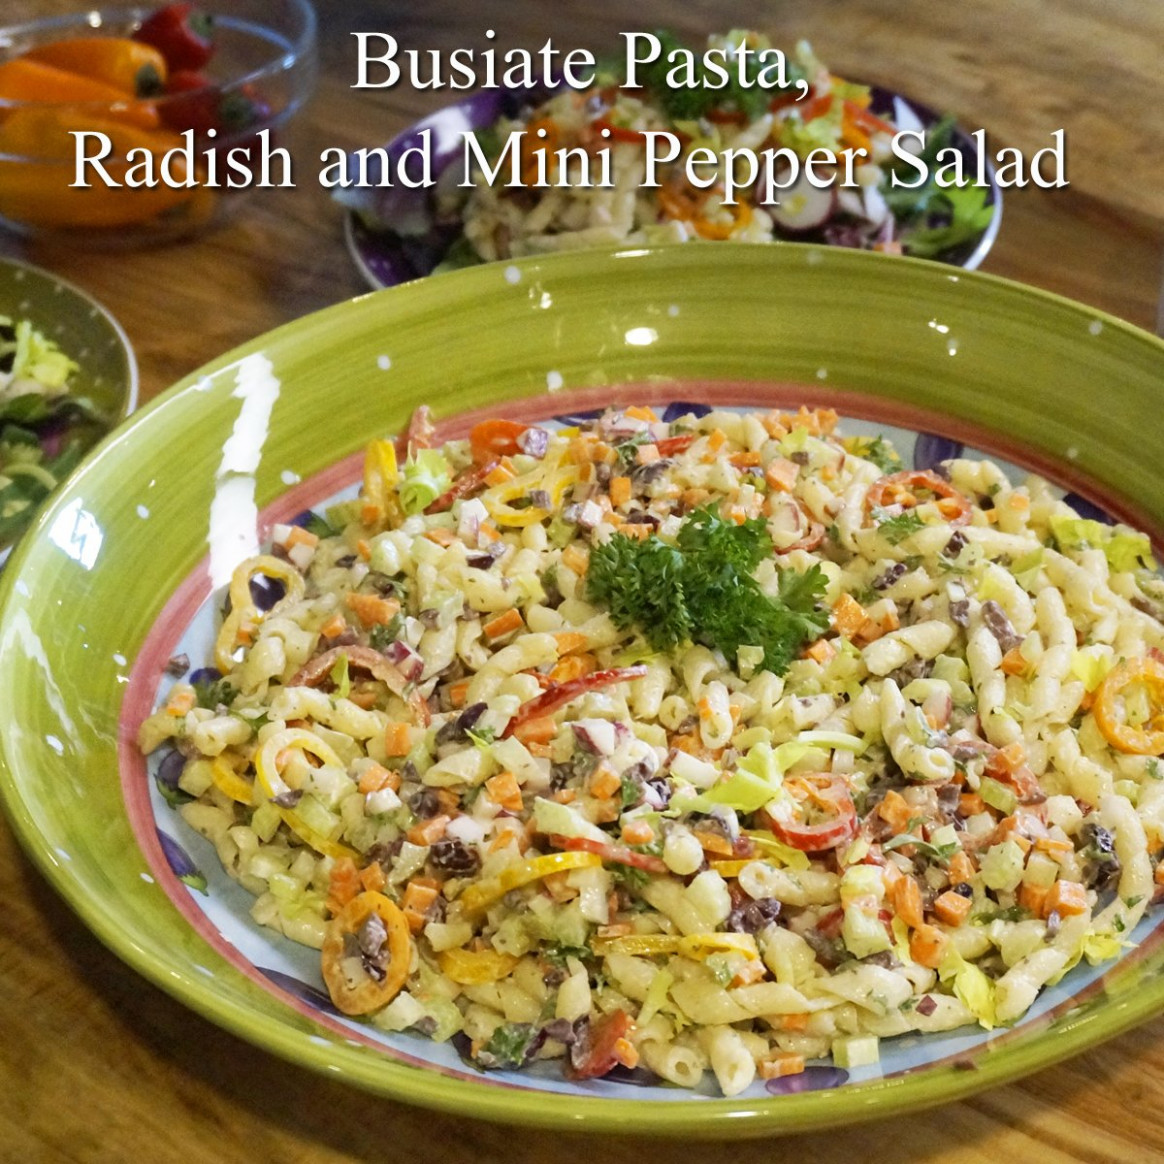 "Laura Theodore on Twitter: ""I love this Busiate Pasta .."